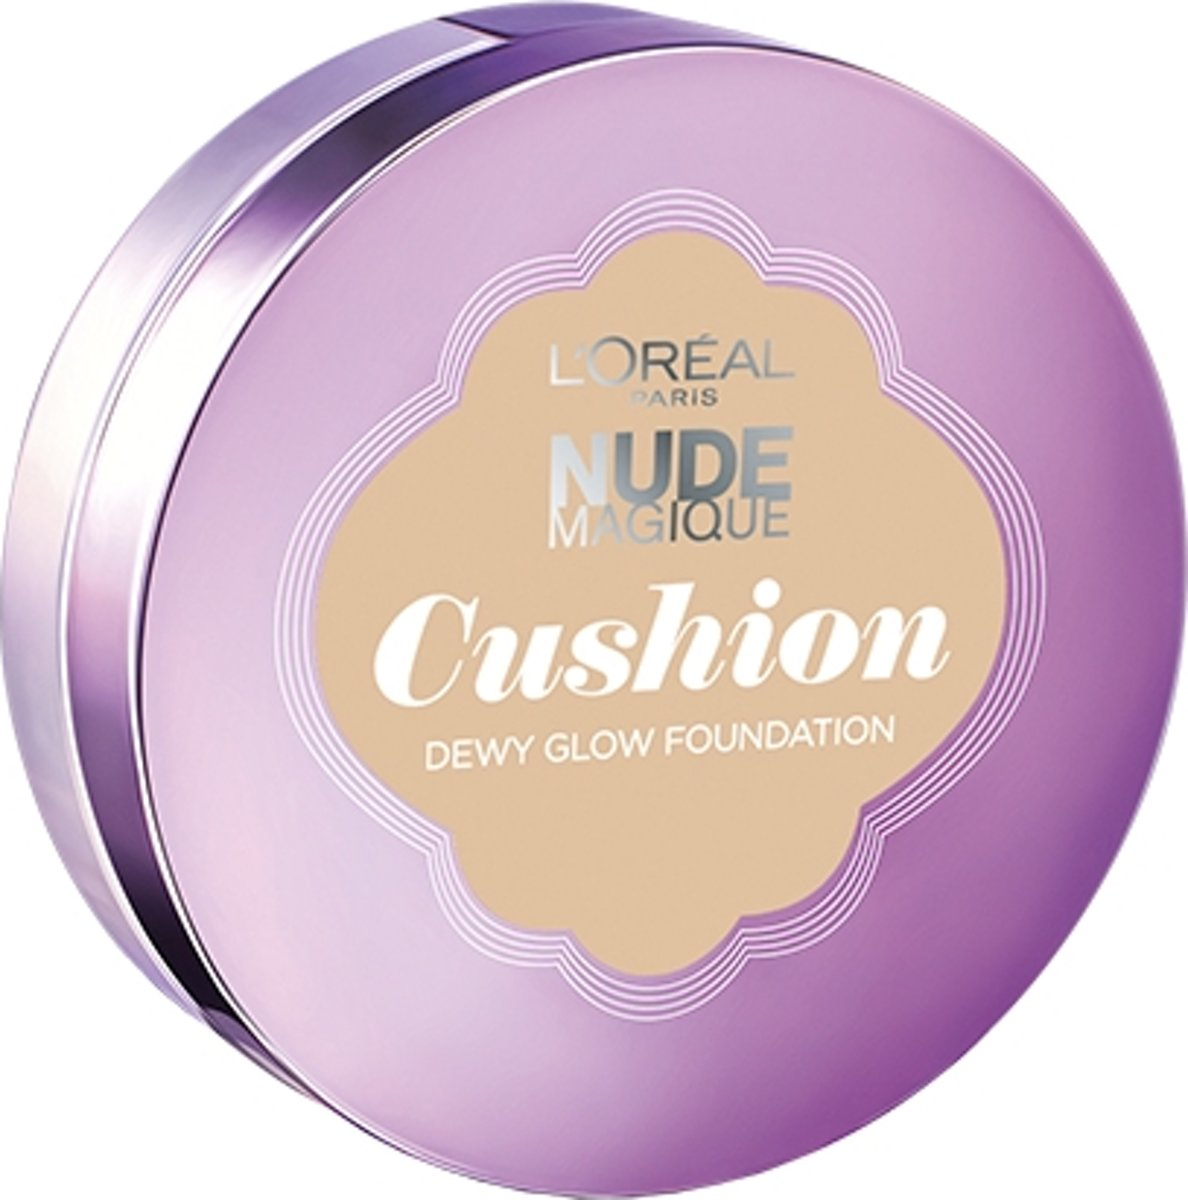 L'Oréal Paris Nude Magique Cushion - 03 Vanilla - Foundation